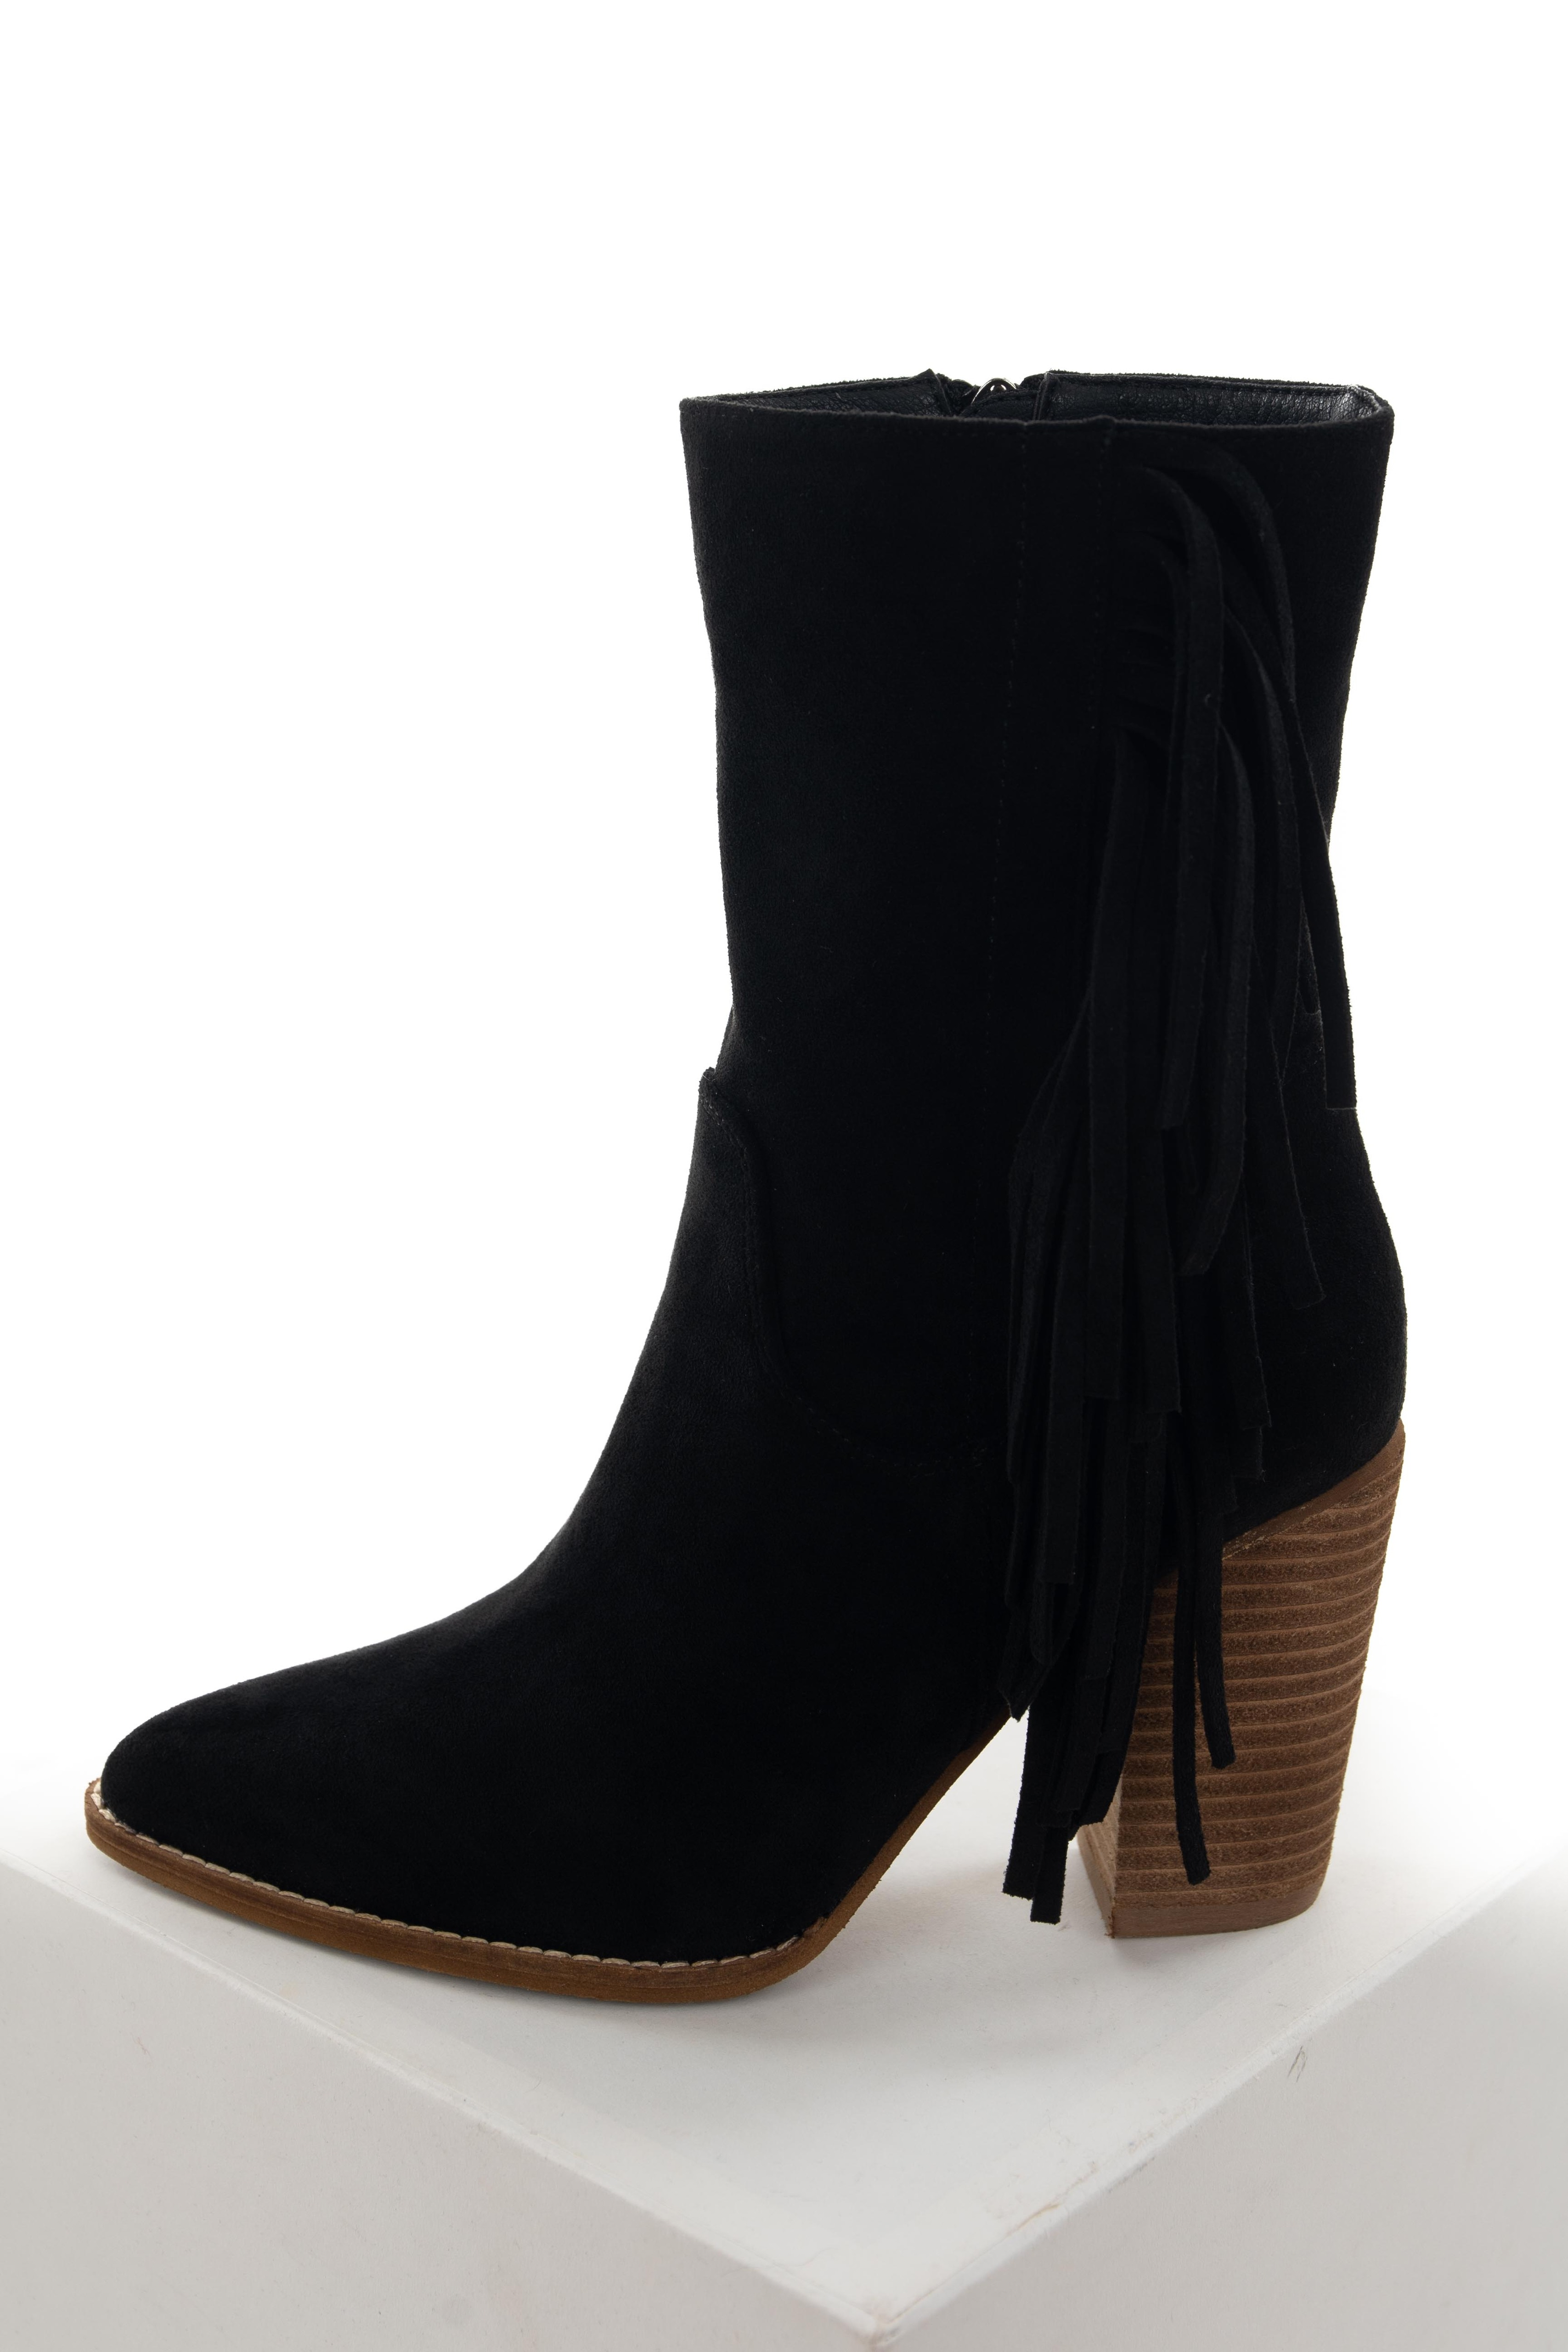 Black Fringe Pointed Toe Mid Calf Boots